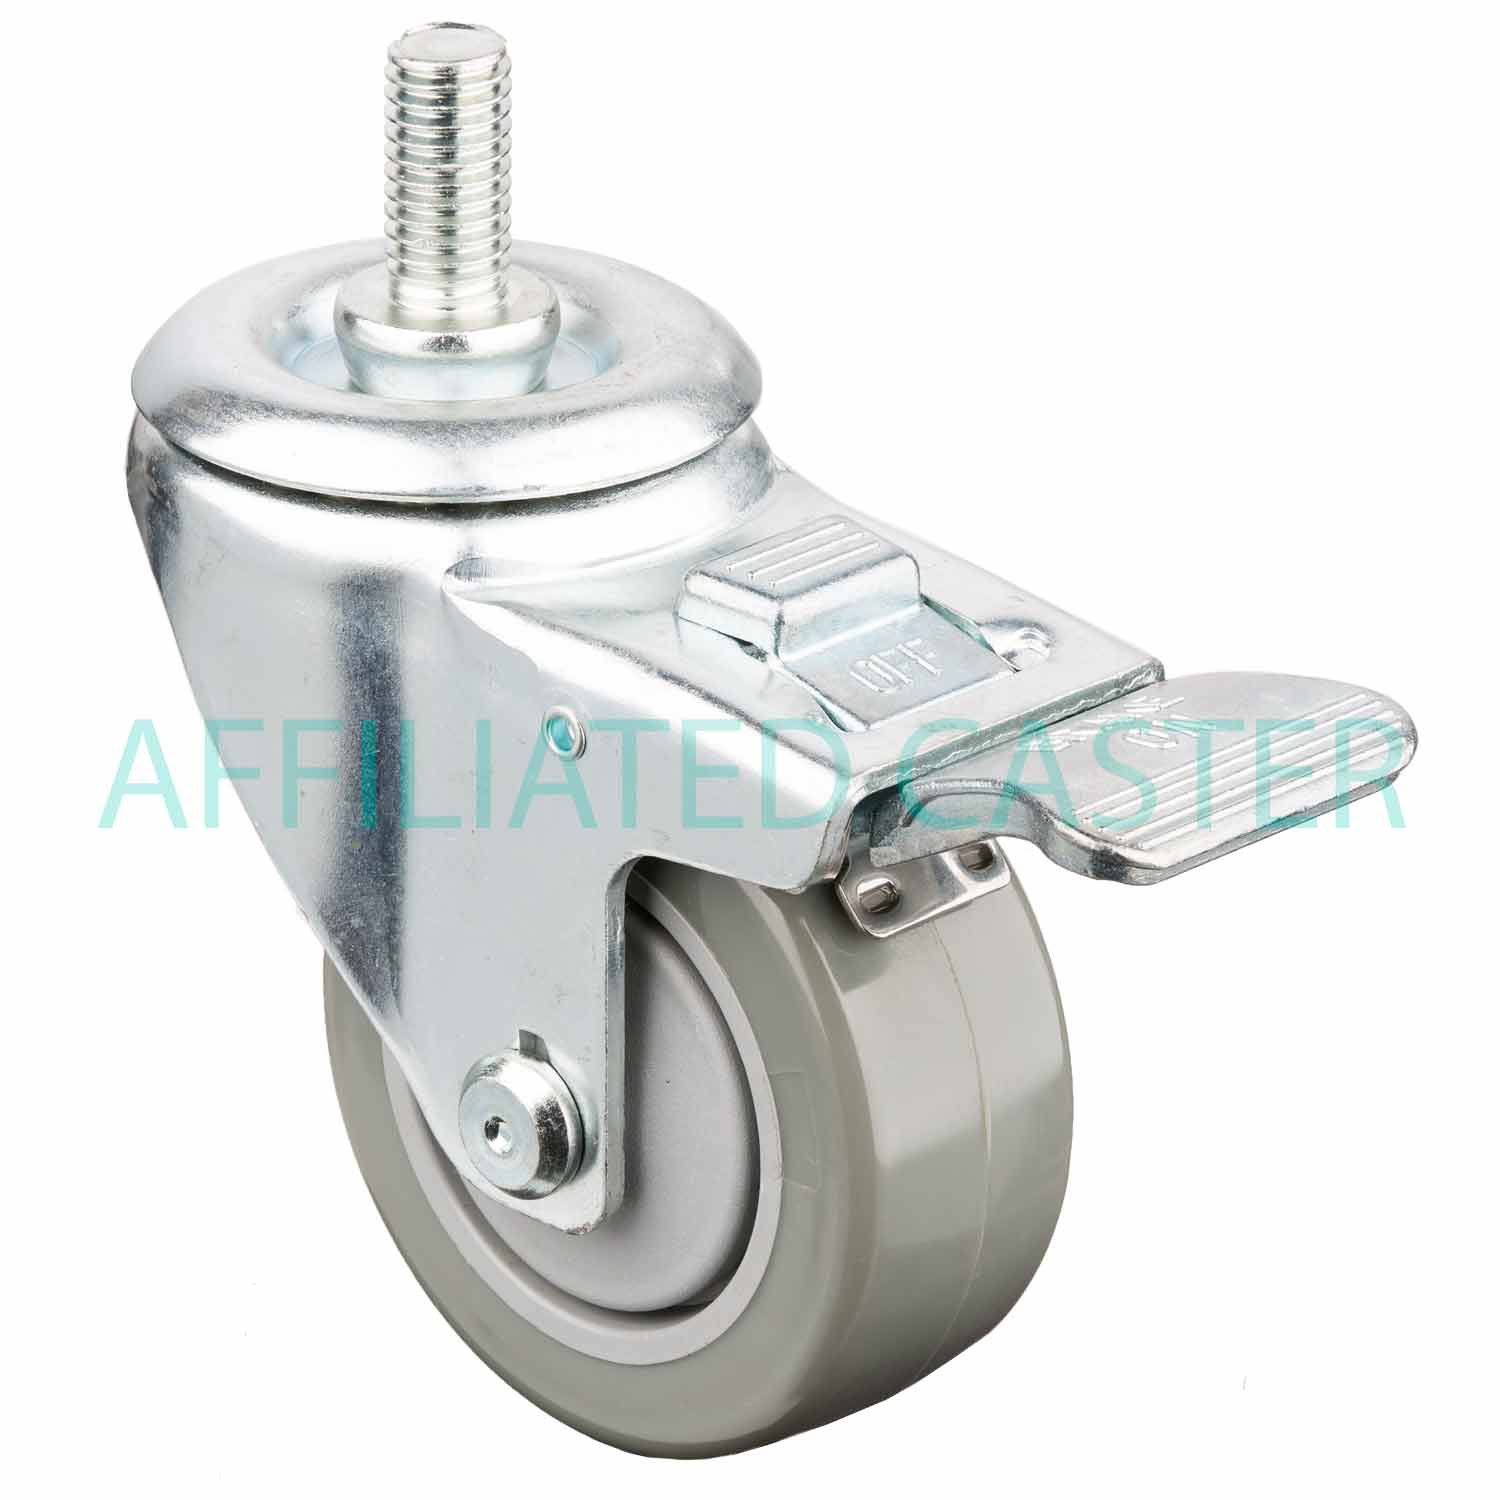 chair casters threaded stem hanging spring 6 unique caster installation insured by ross